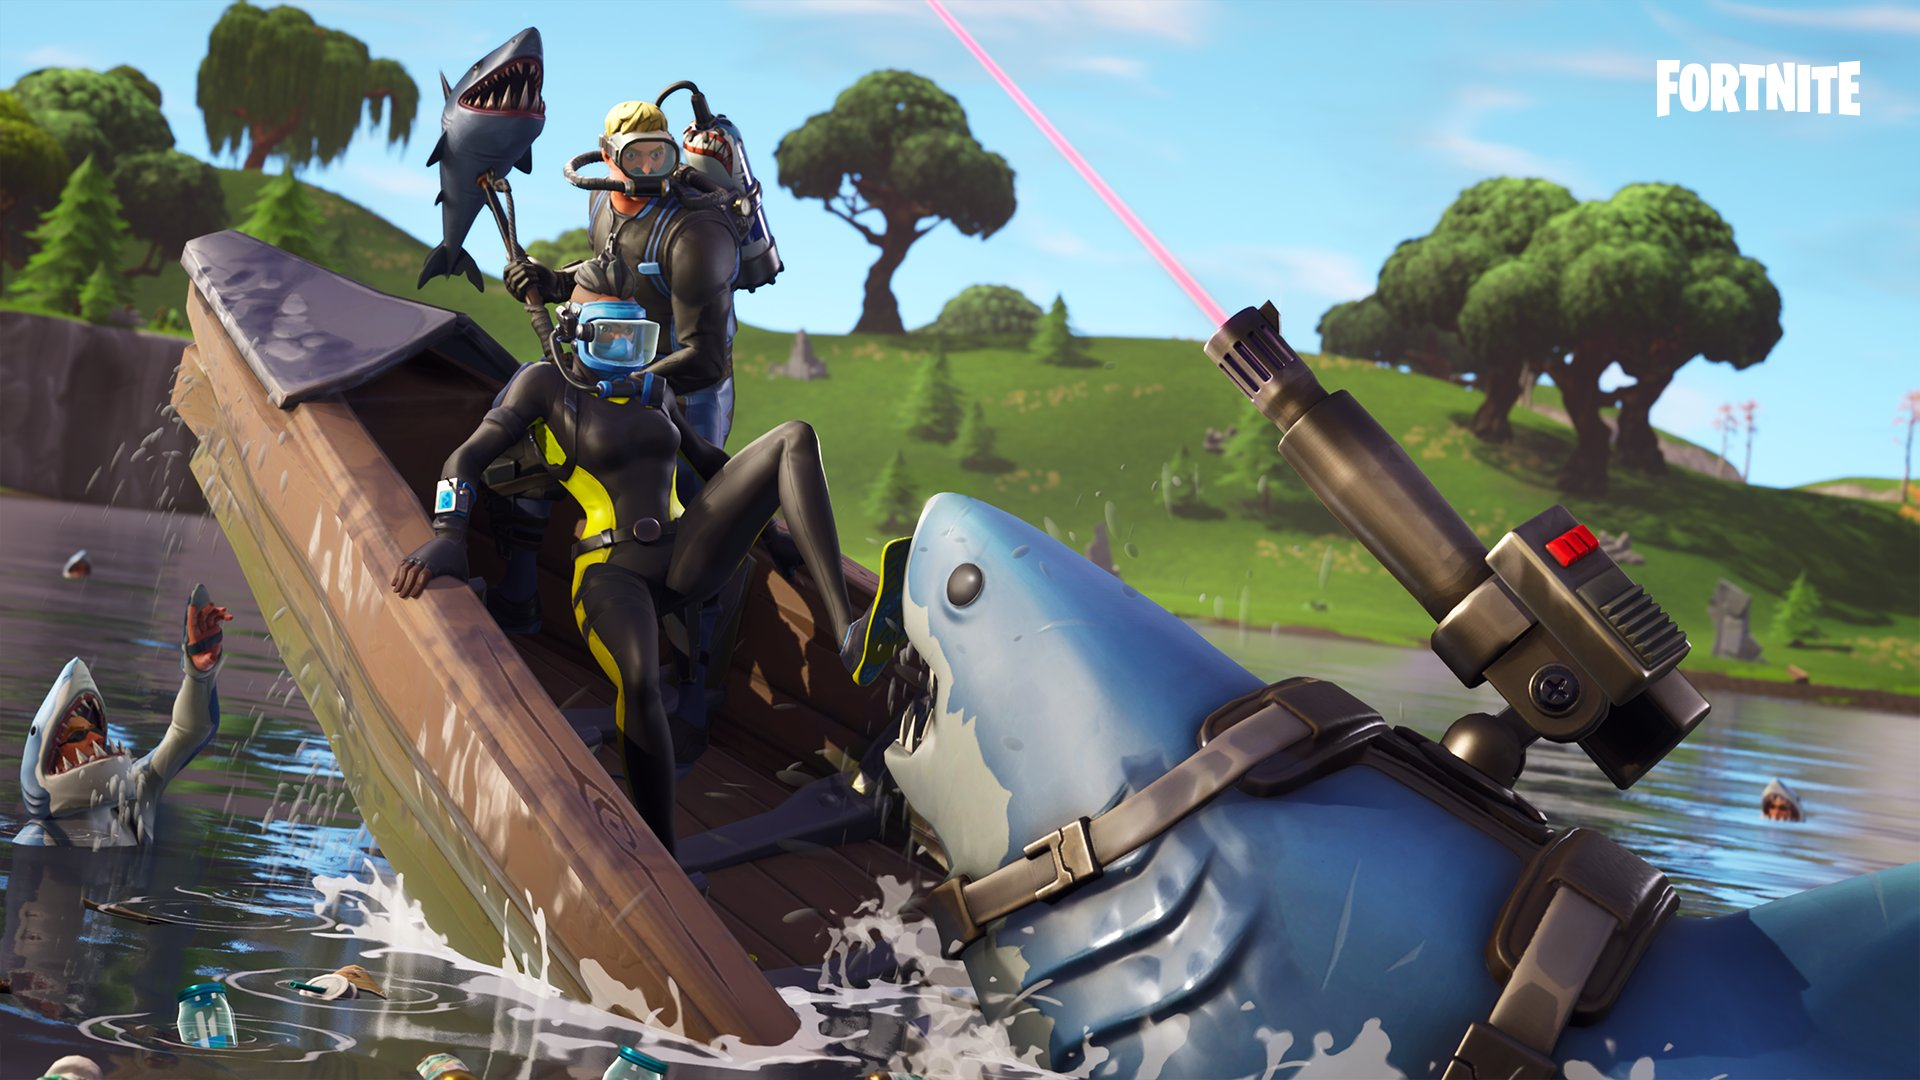 How Long Until Fortnite Mobile Comes Out For Android These Android Smartphones Will Support Fortnite Mobile Talkandroid Com